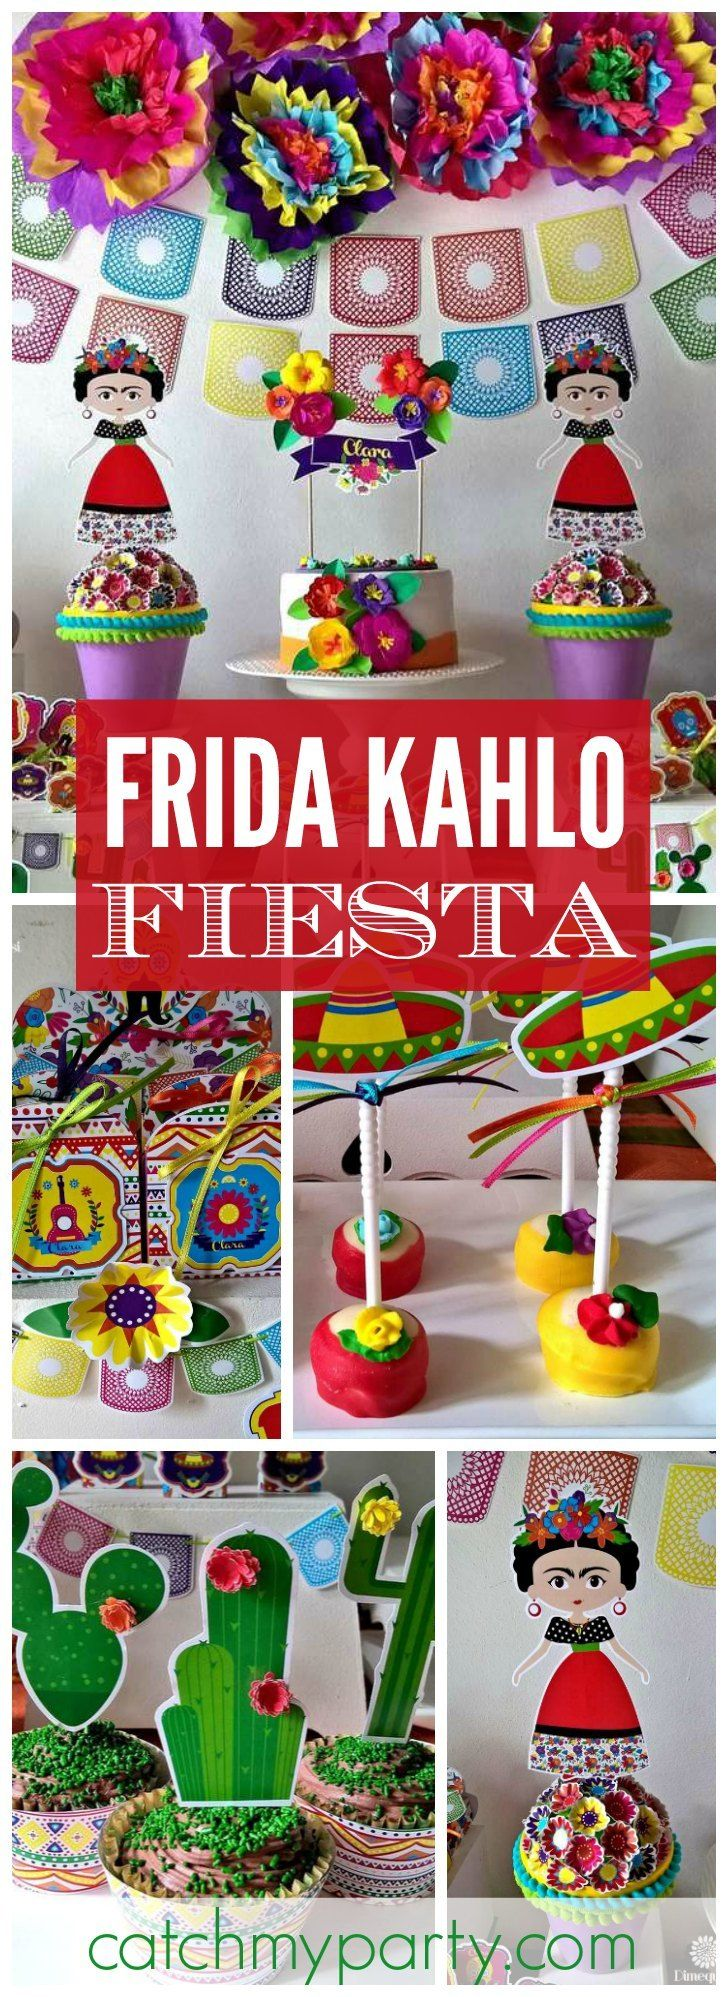 "Fiesta / Mexican / Birthday ""Frida Fiesta Mexicana"""